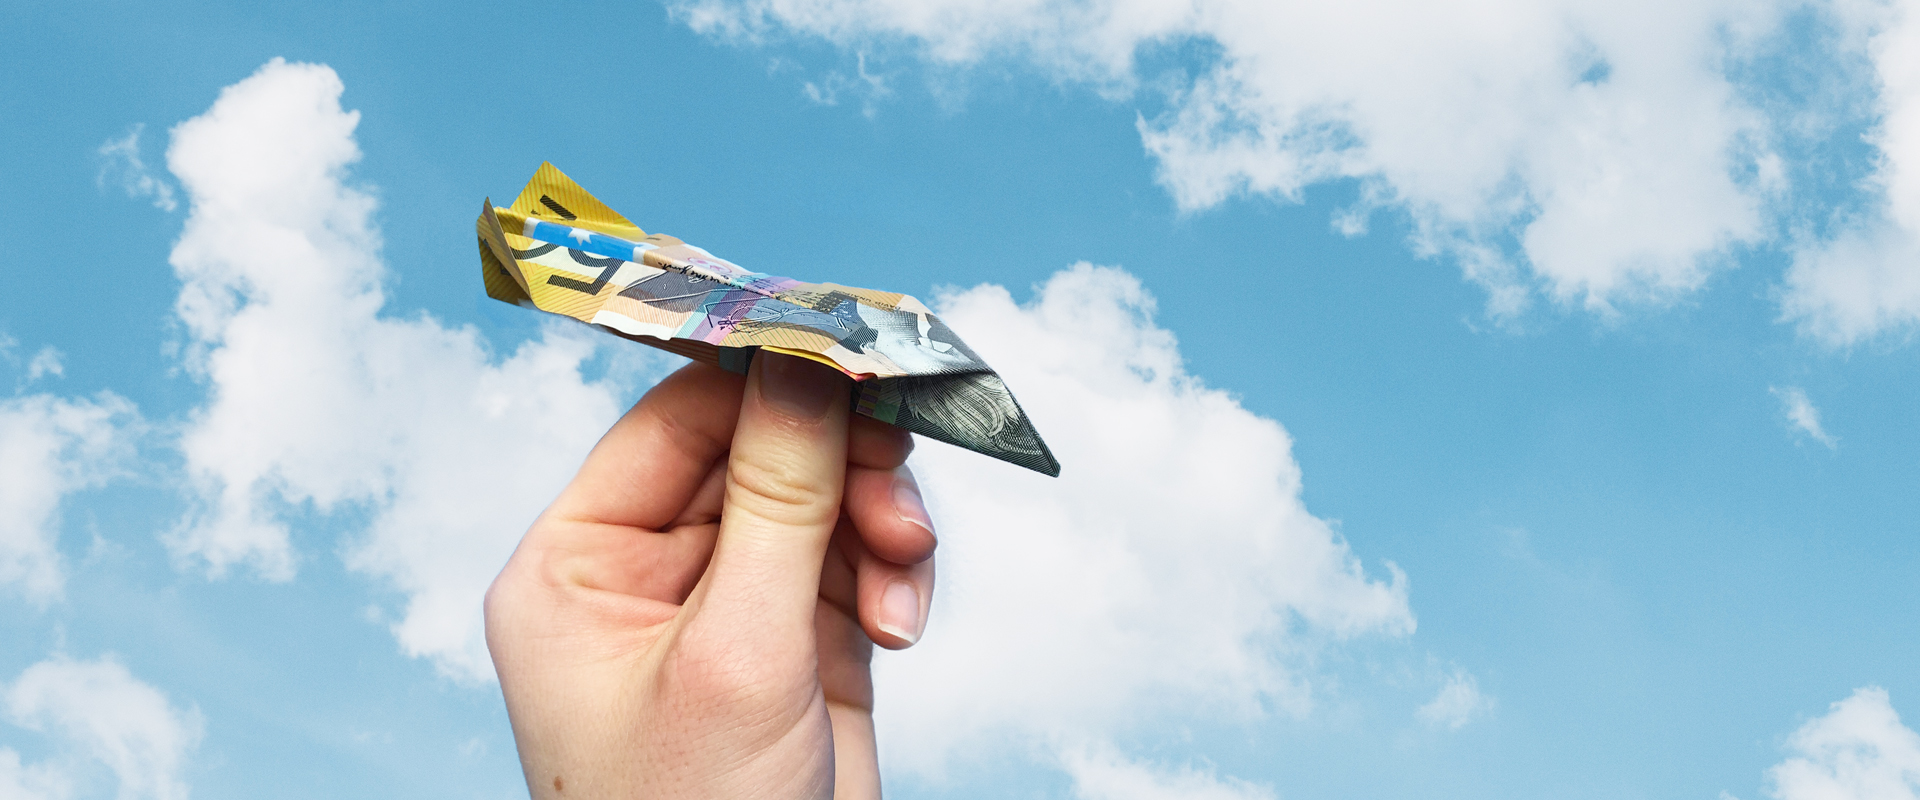 hand holding an AU$50 banknote paper aeroplane against a blue sky